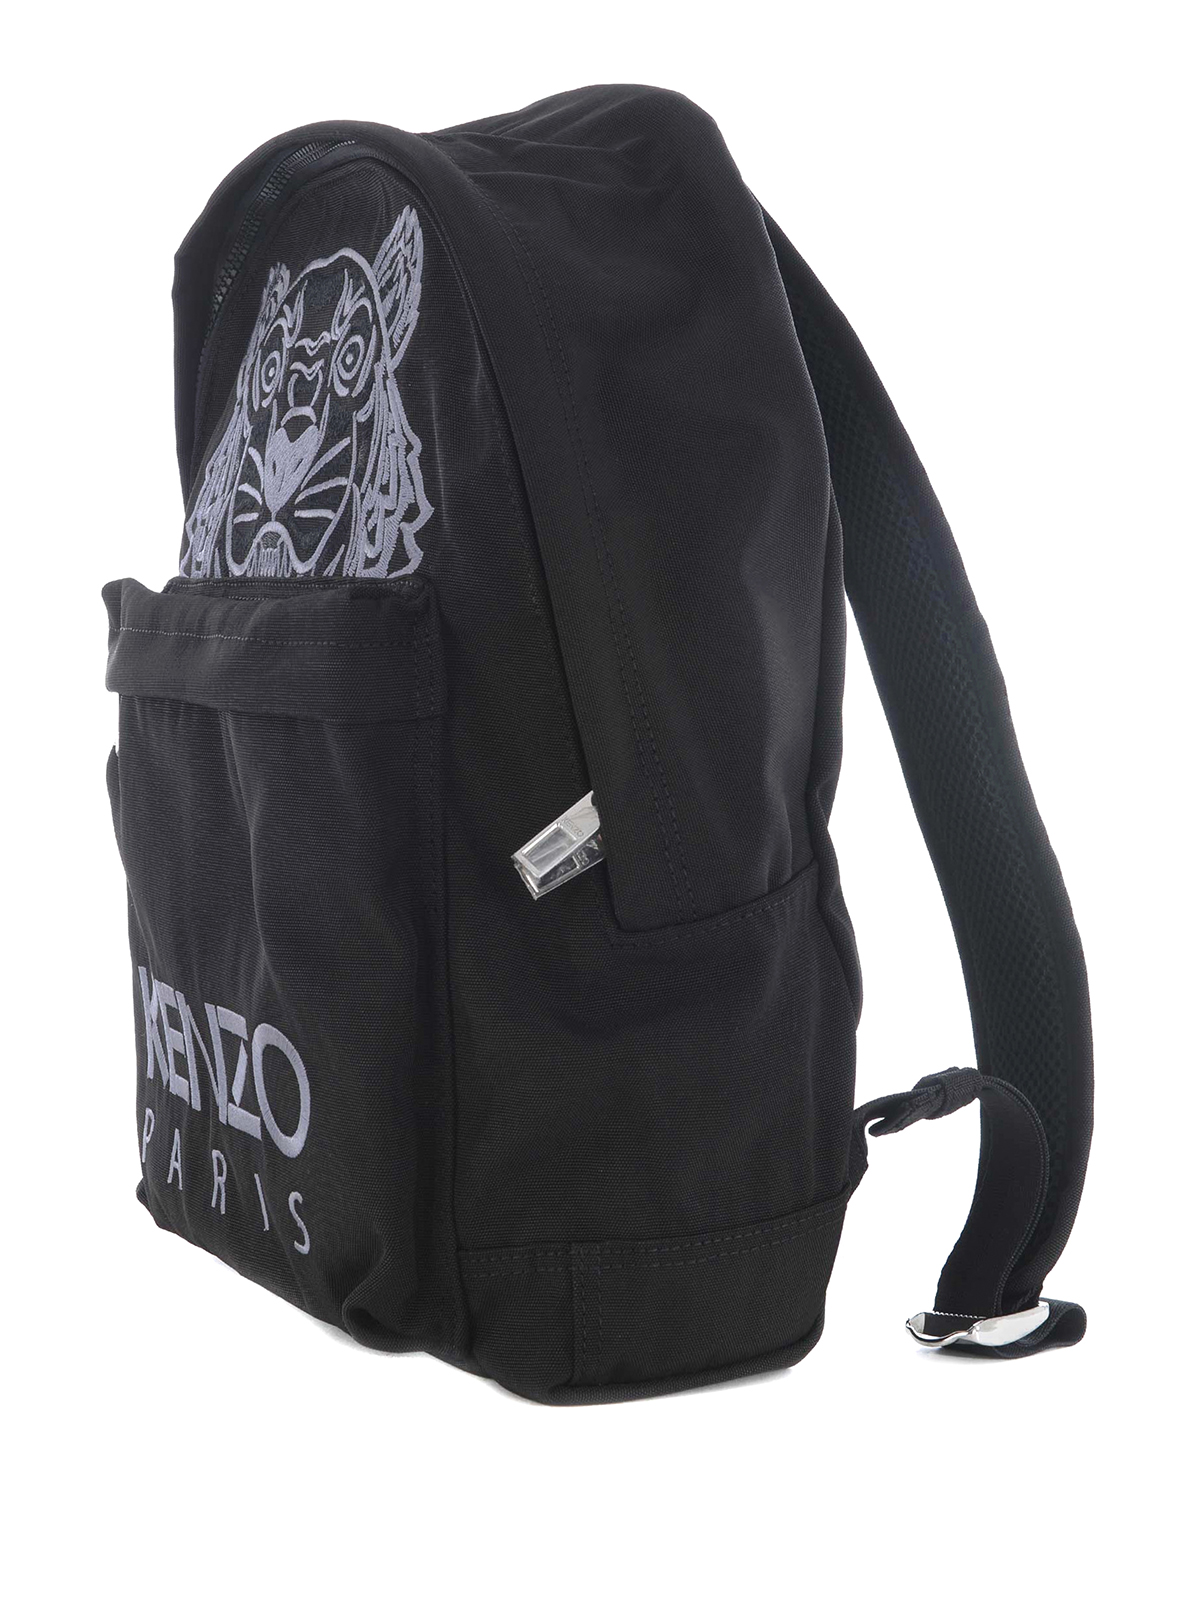 Kenzo Large Tiger Canvas Backpack Backpacks F765sf300f2099 Bacpack Online